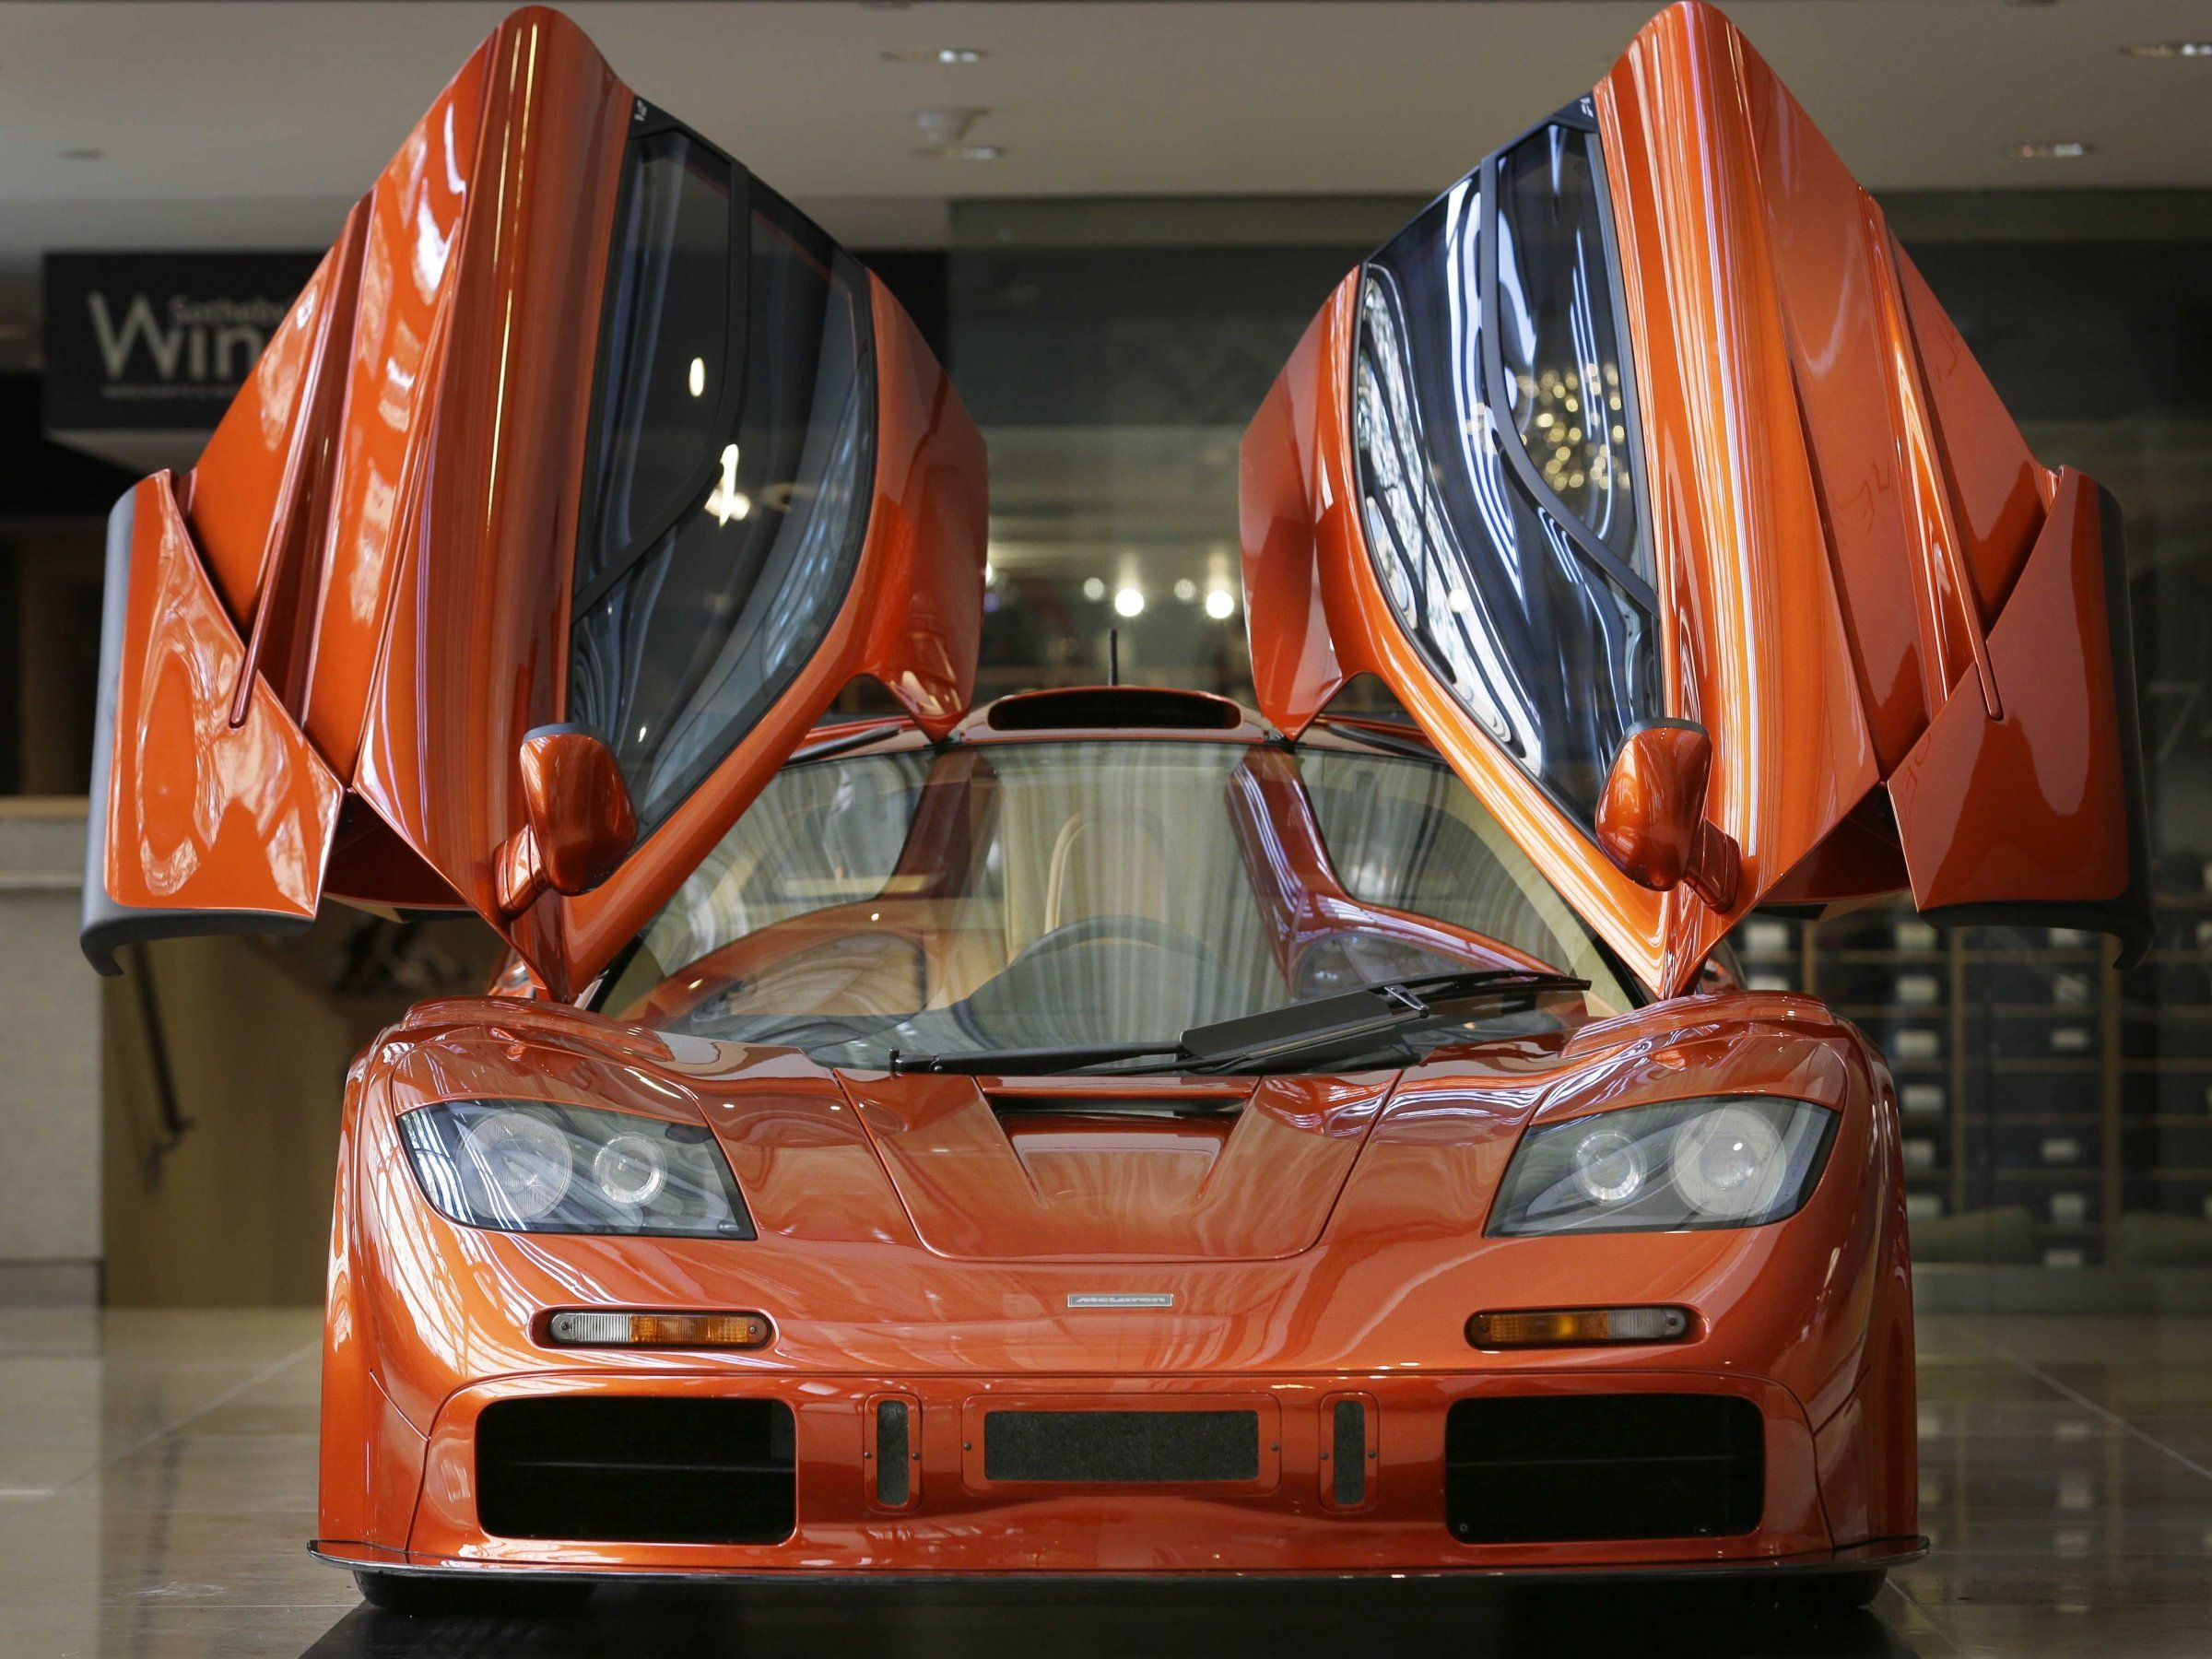 The 14 Million Mclaren F1 Supercar Is Now 25 Years Old Super Cars Mclaren F1 Mclaren Cars